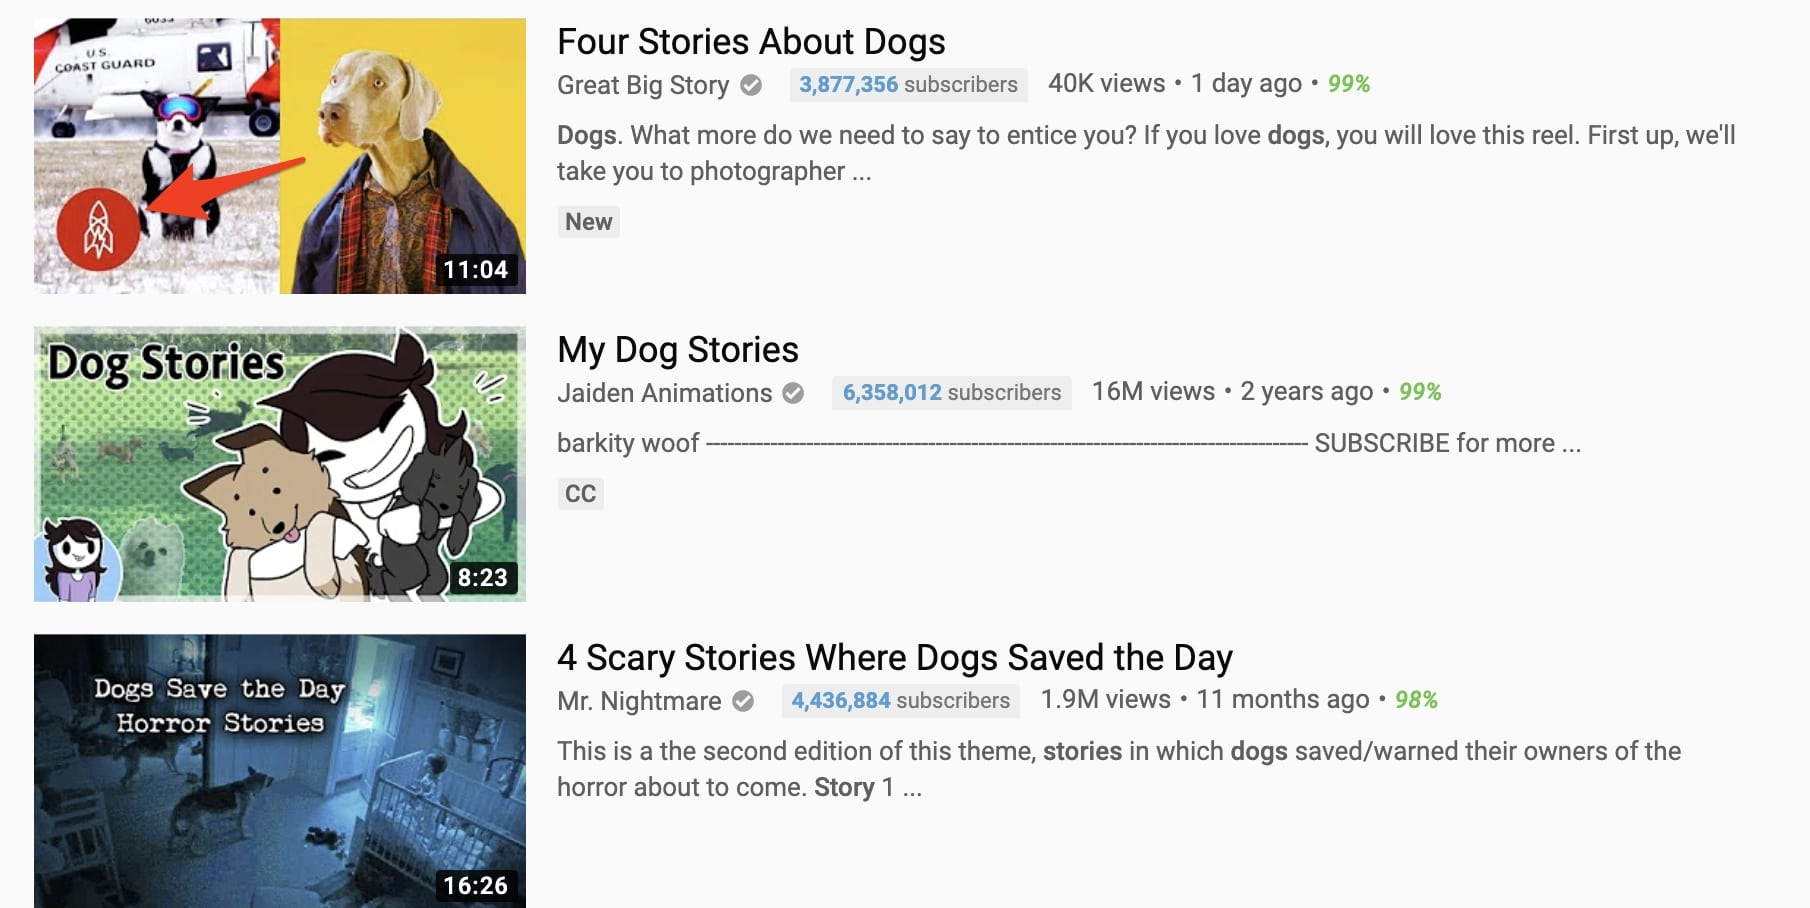 great big story using branded thumbnails on youtube